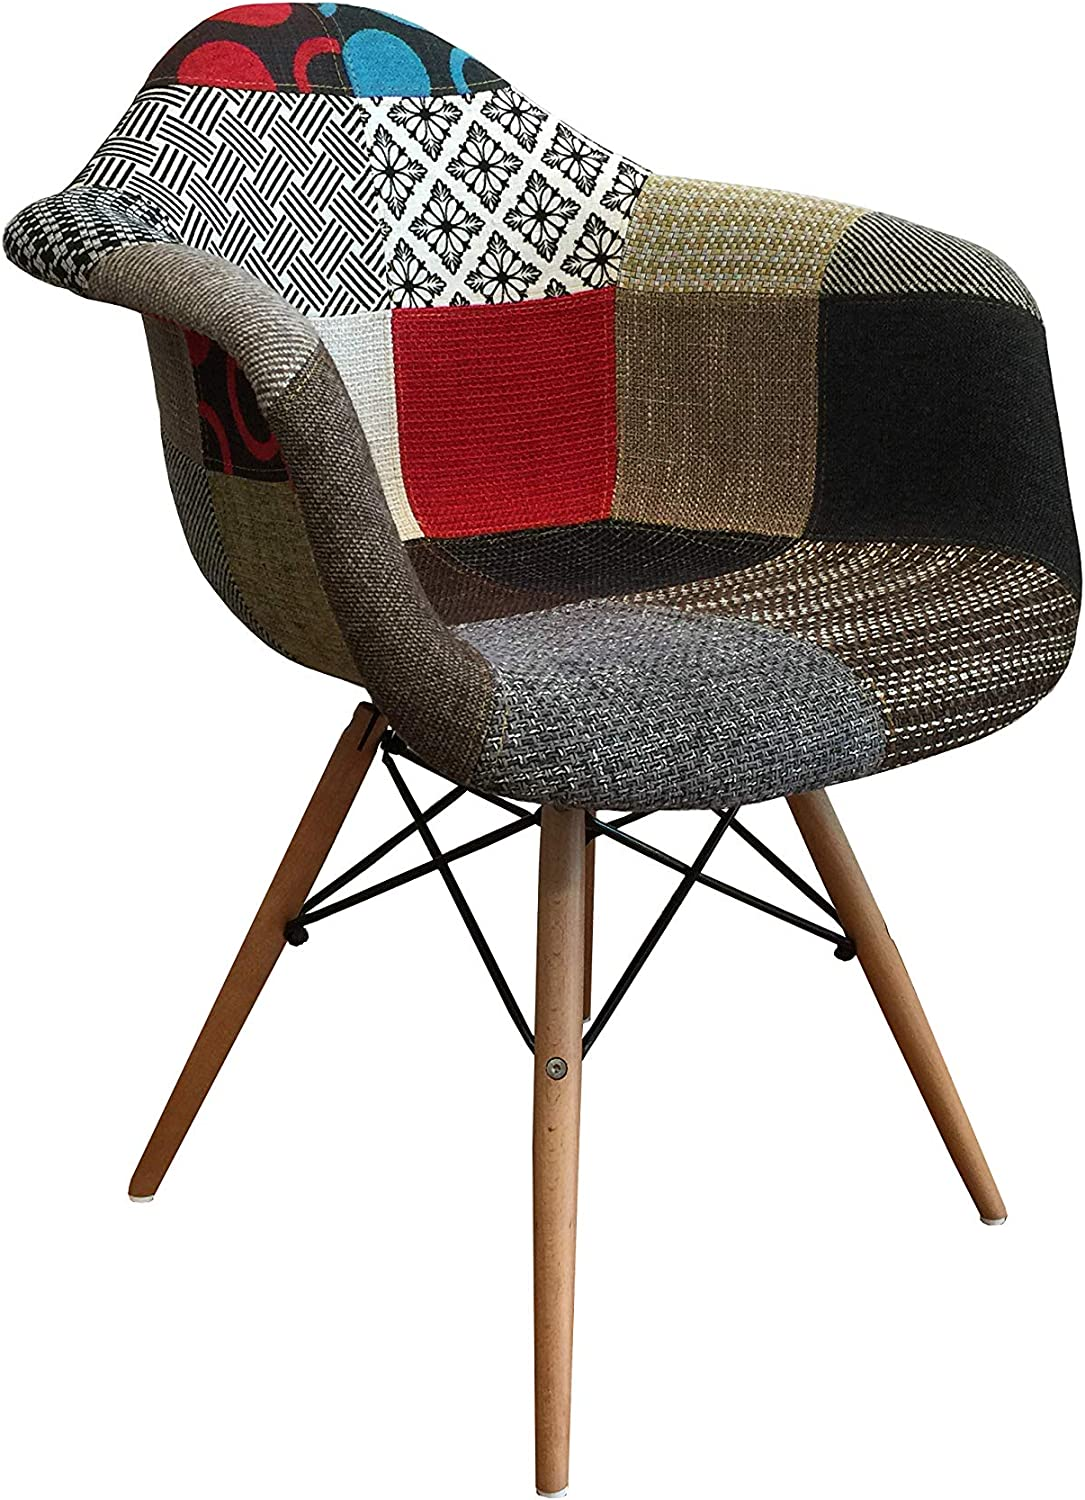 Fabric with Natural Beech Wood Arm Chair